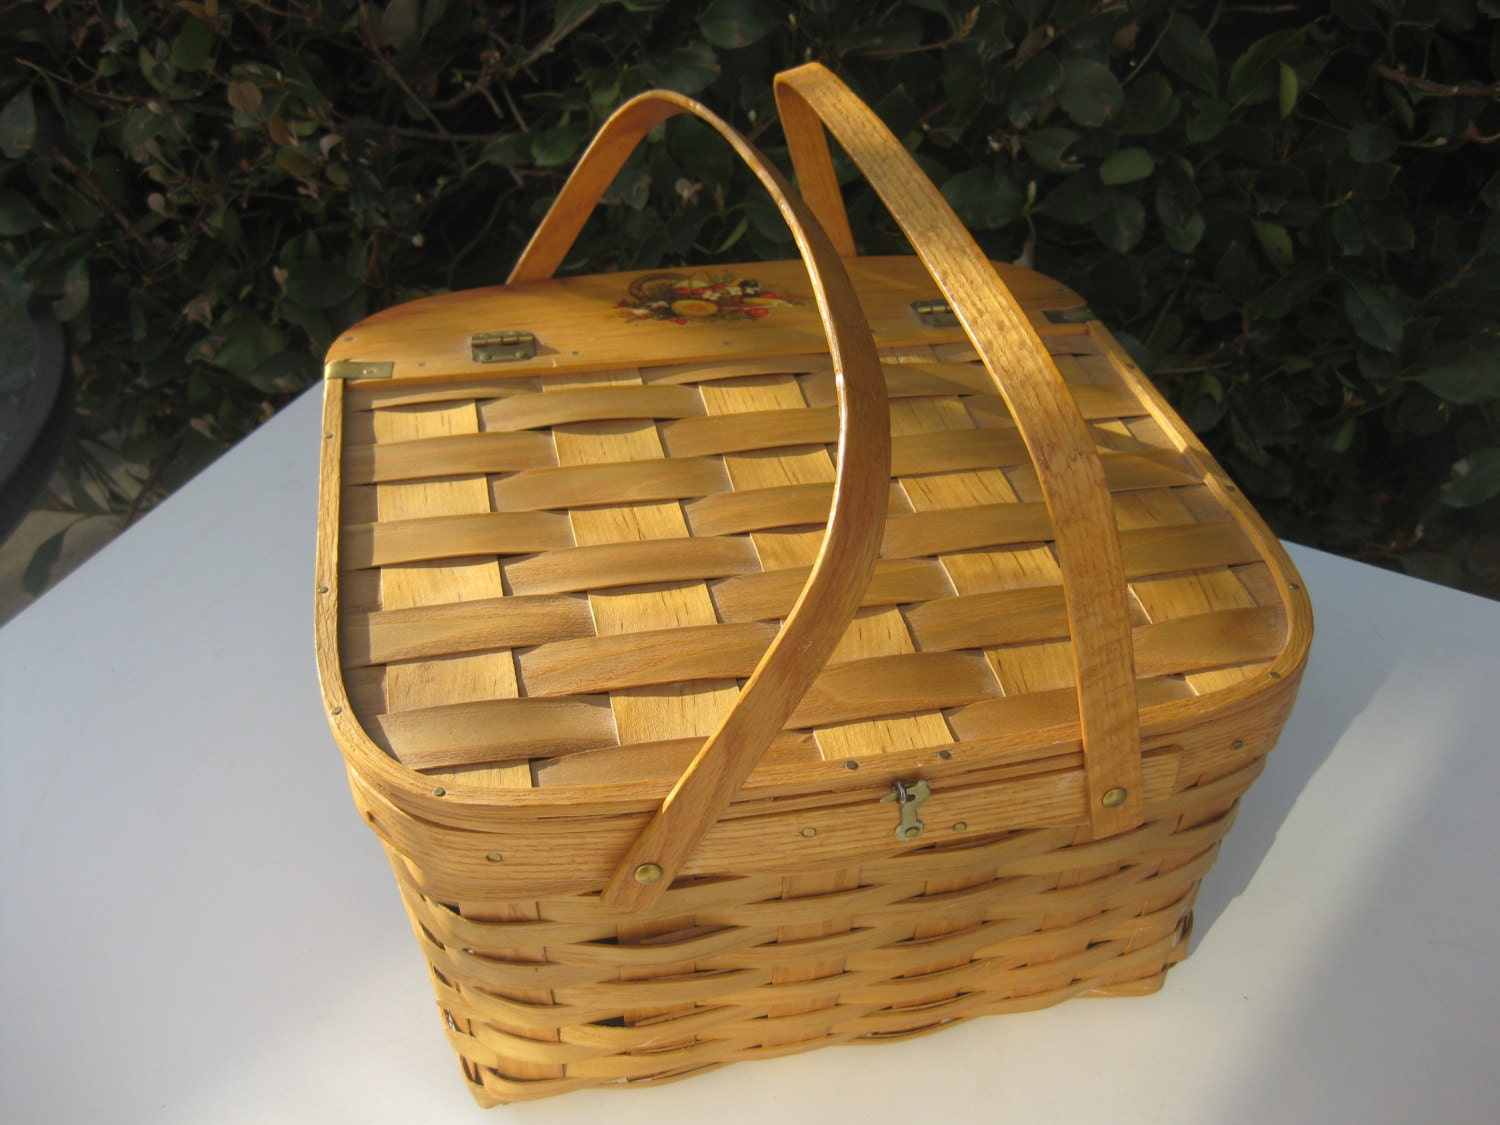 Picnic Basket Pie : Picnic basket with pie rack from new by mylittlesomethings